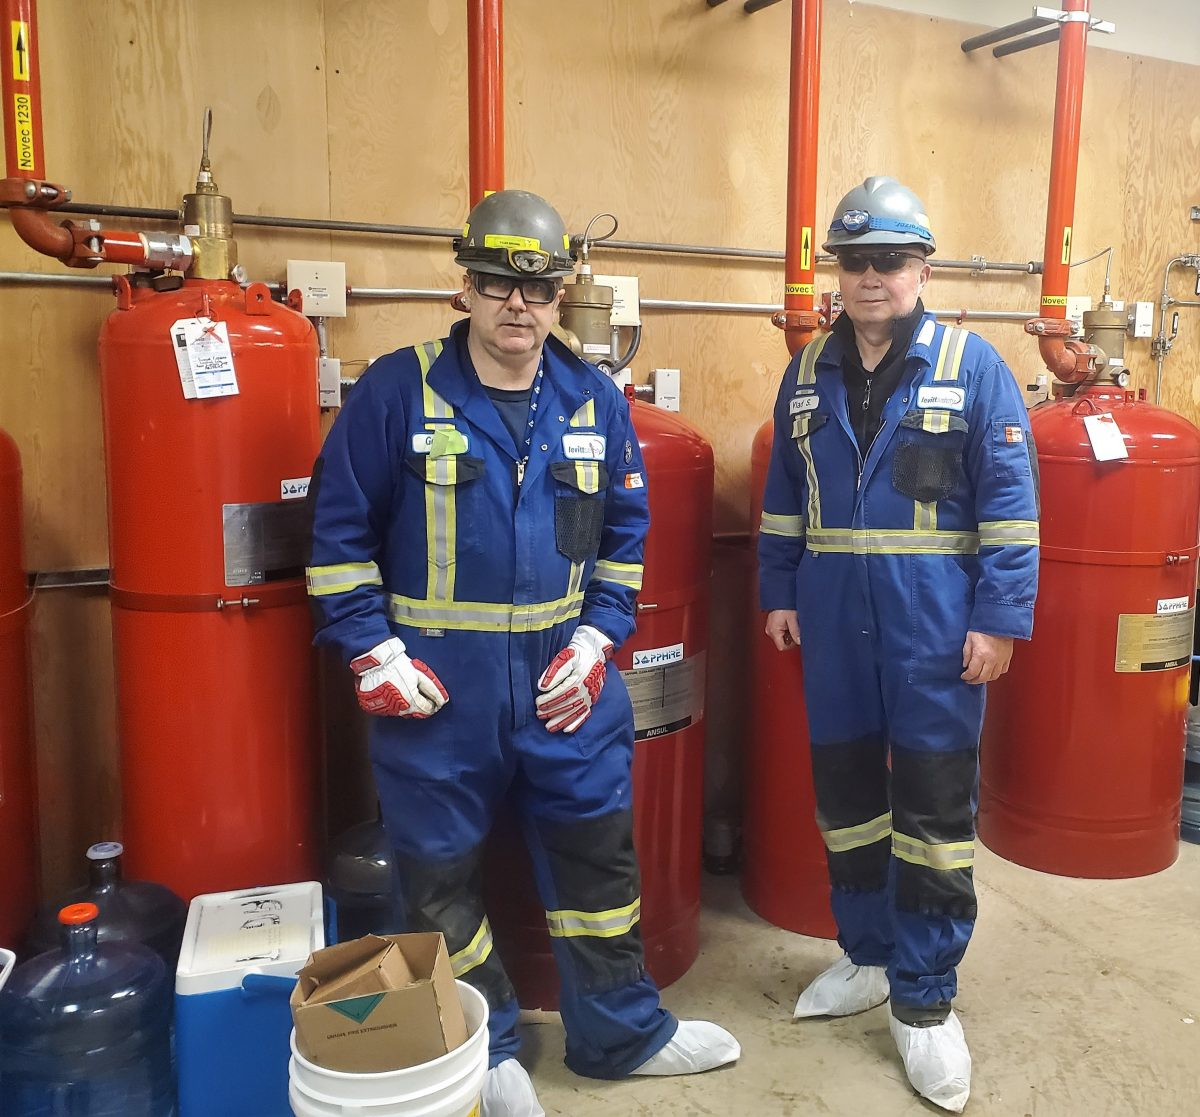 levitt safety fire suppression servicing team